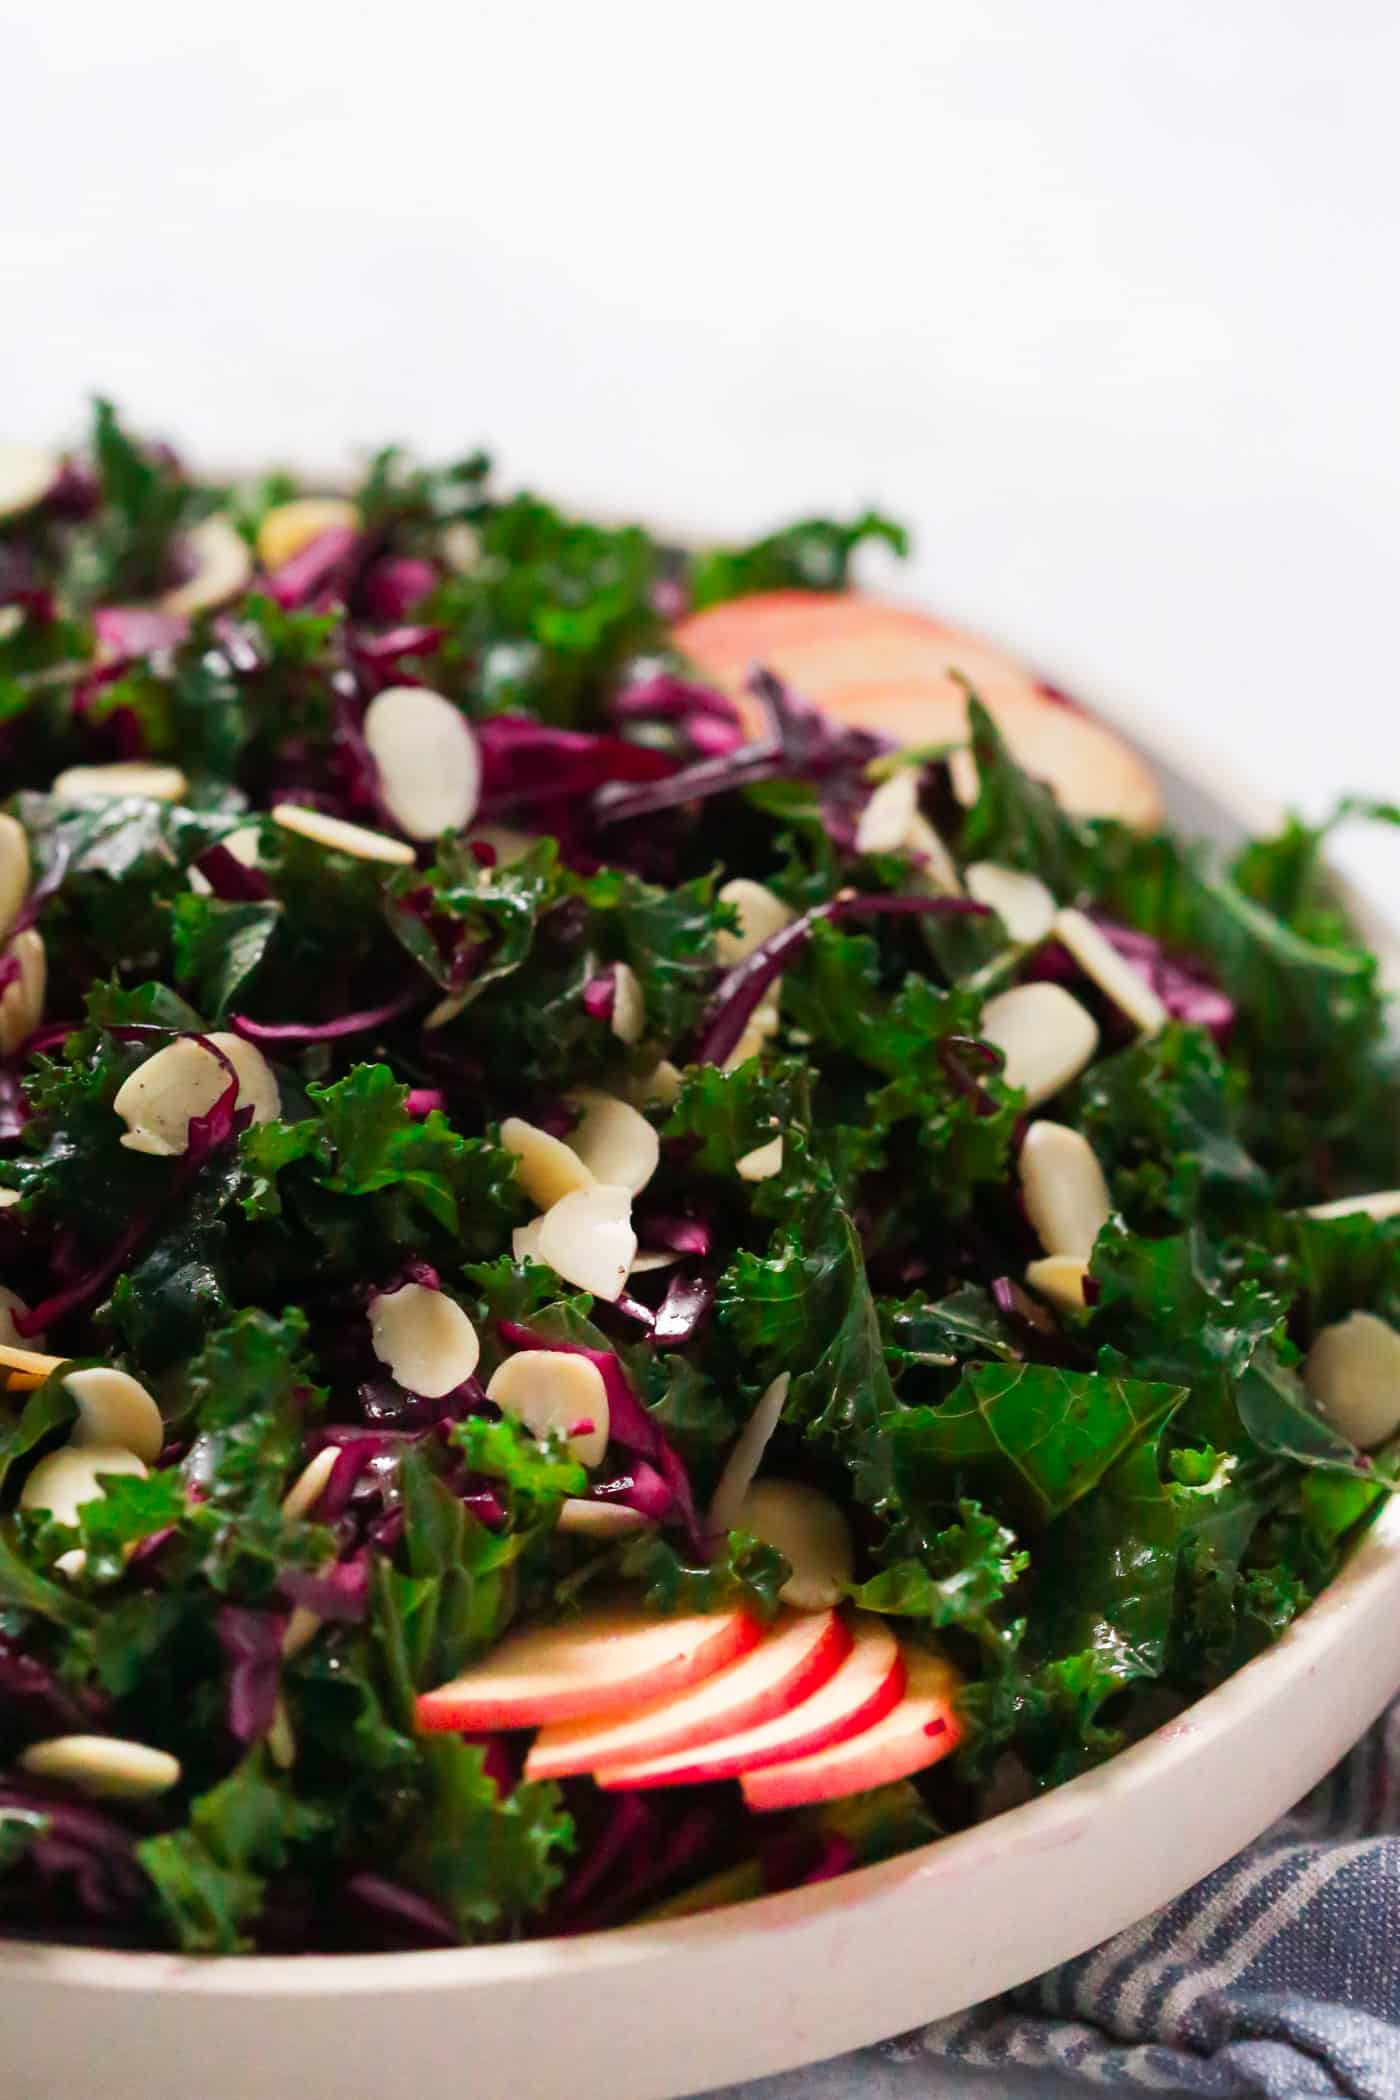 Easy, quick and delicious Chopped Red Cabbage Kale Salad to keep you healthy during the cold weather.